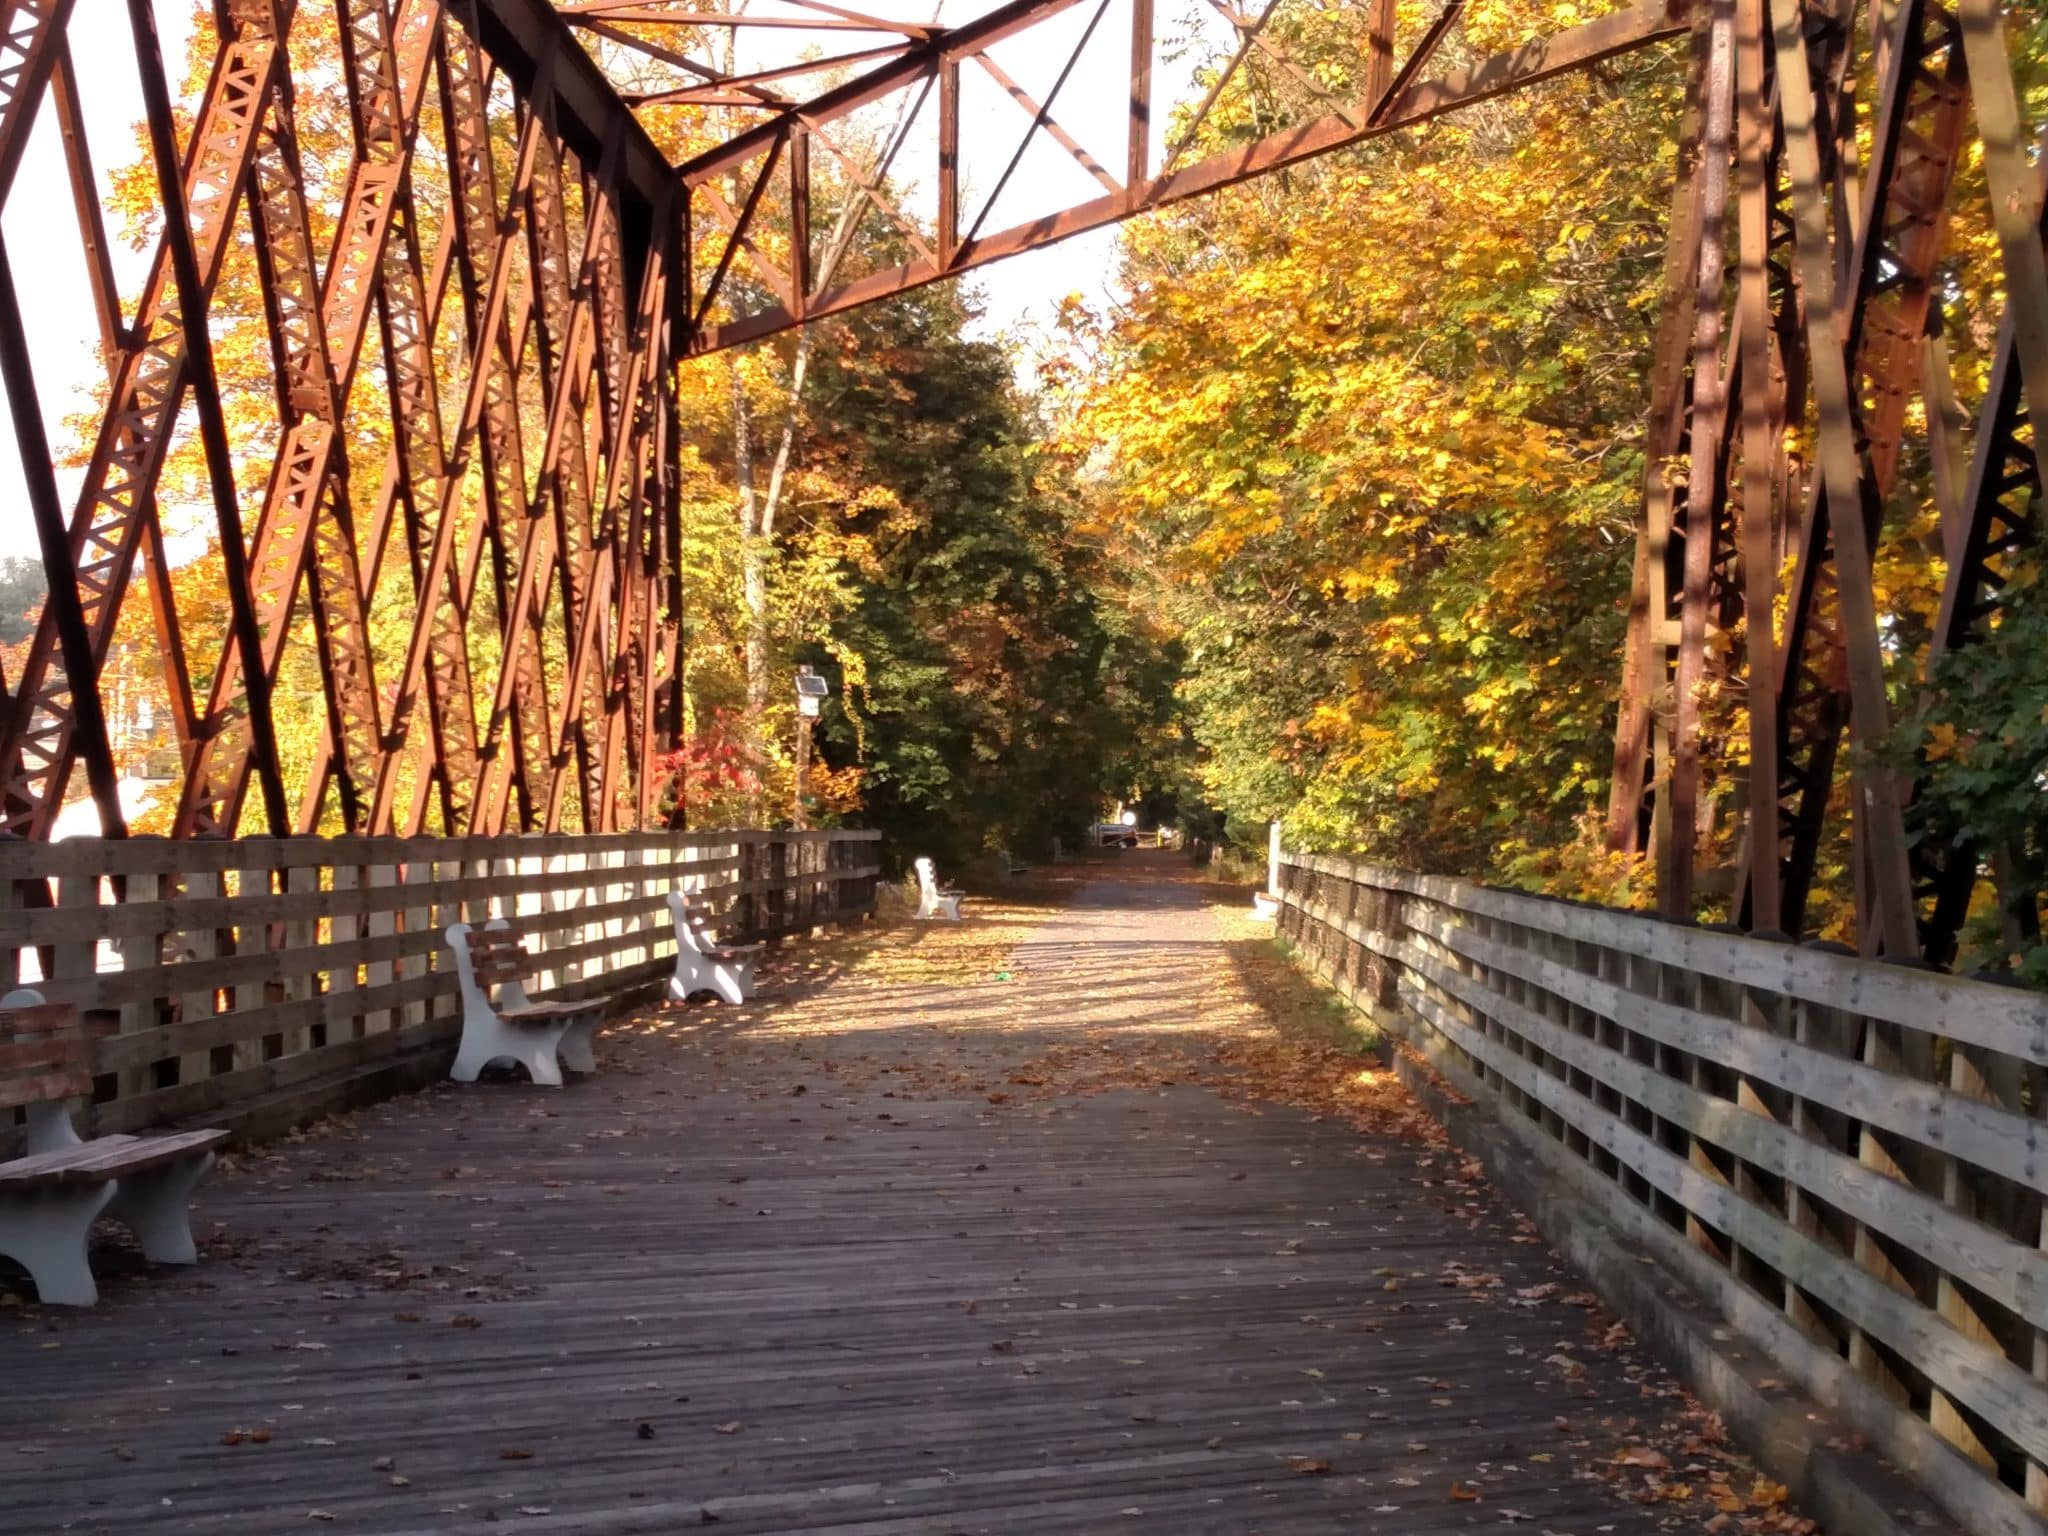 Covered bridge near Hershey PA surrounded by trees in the fall